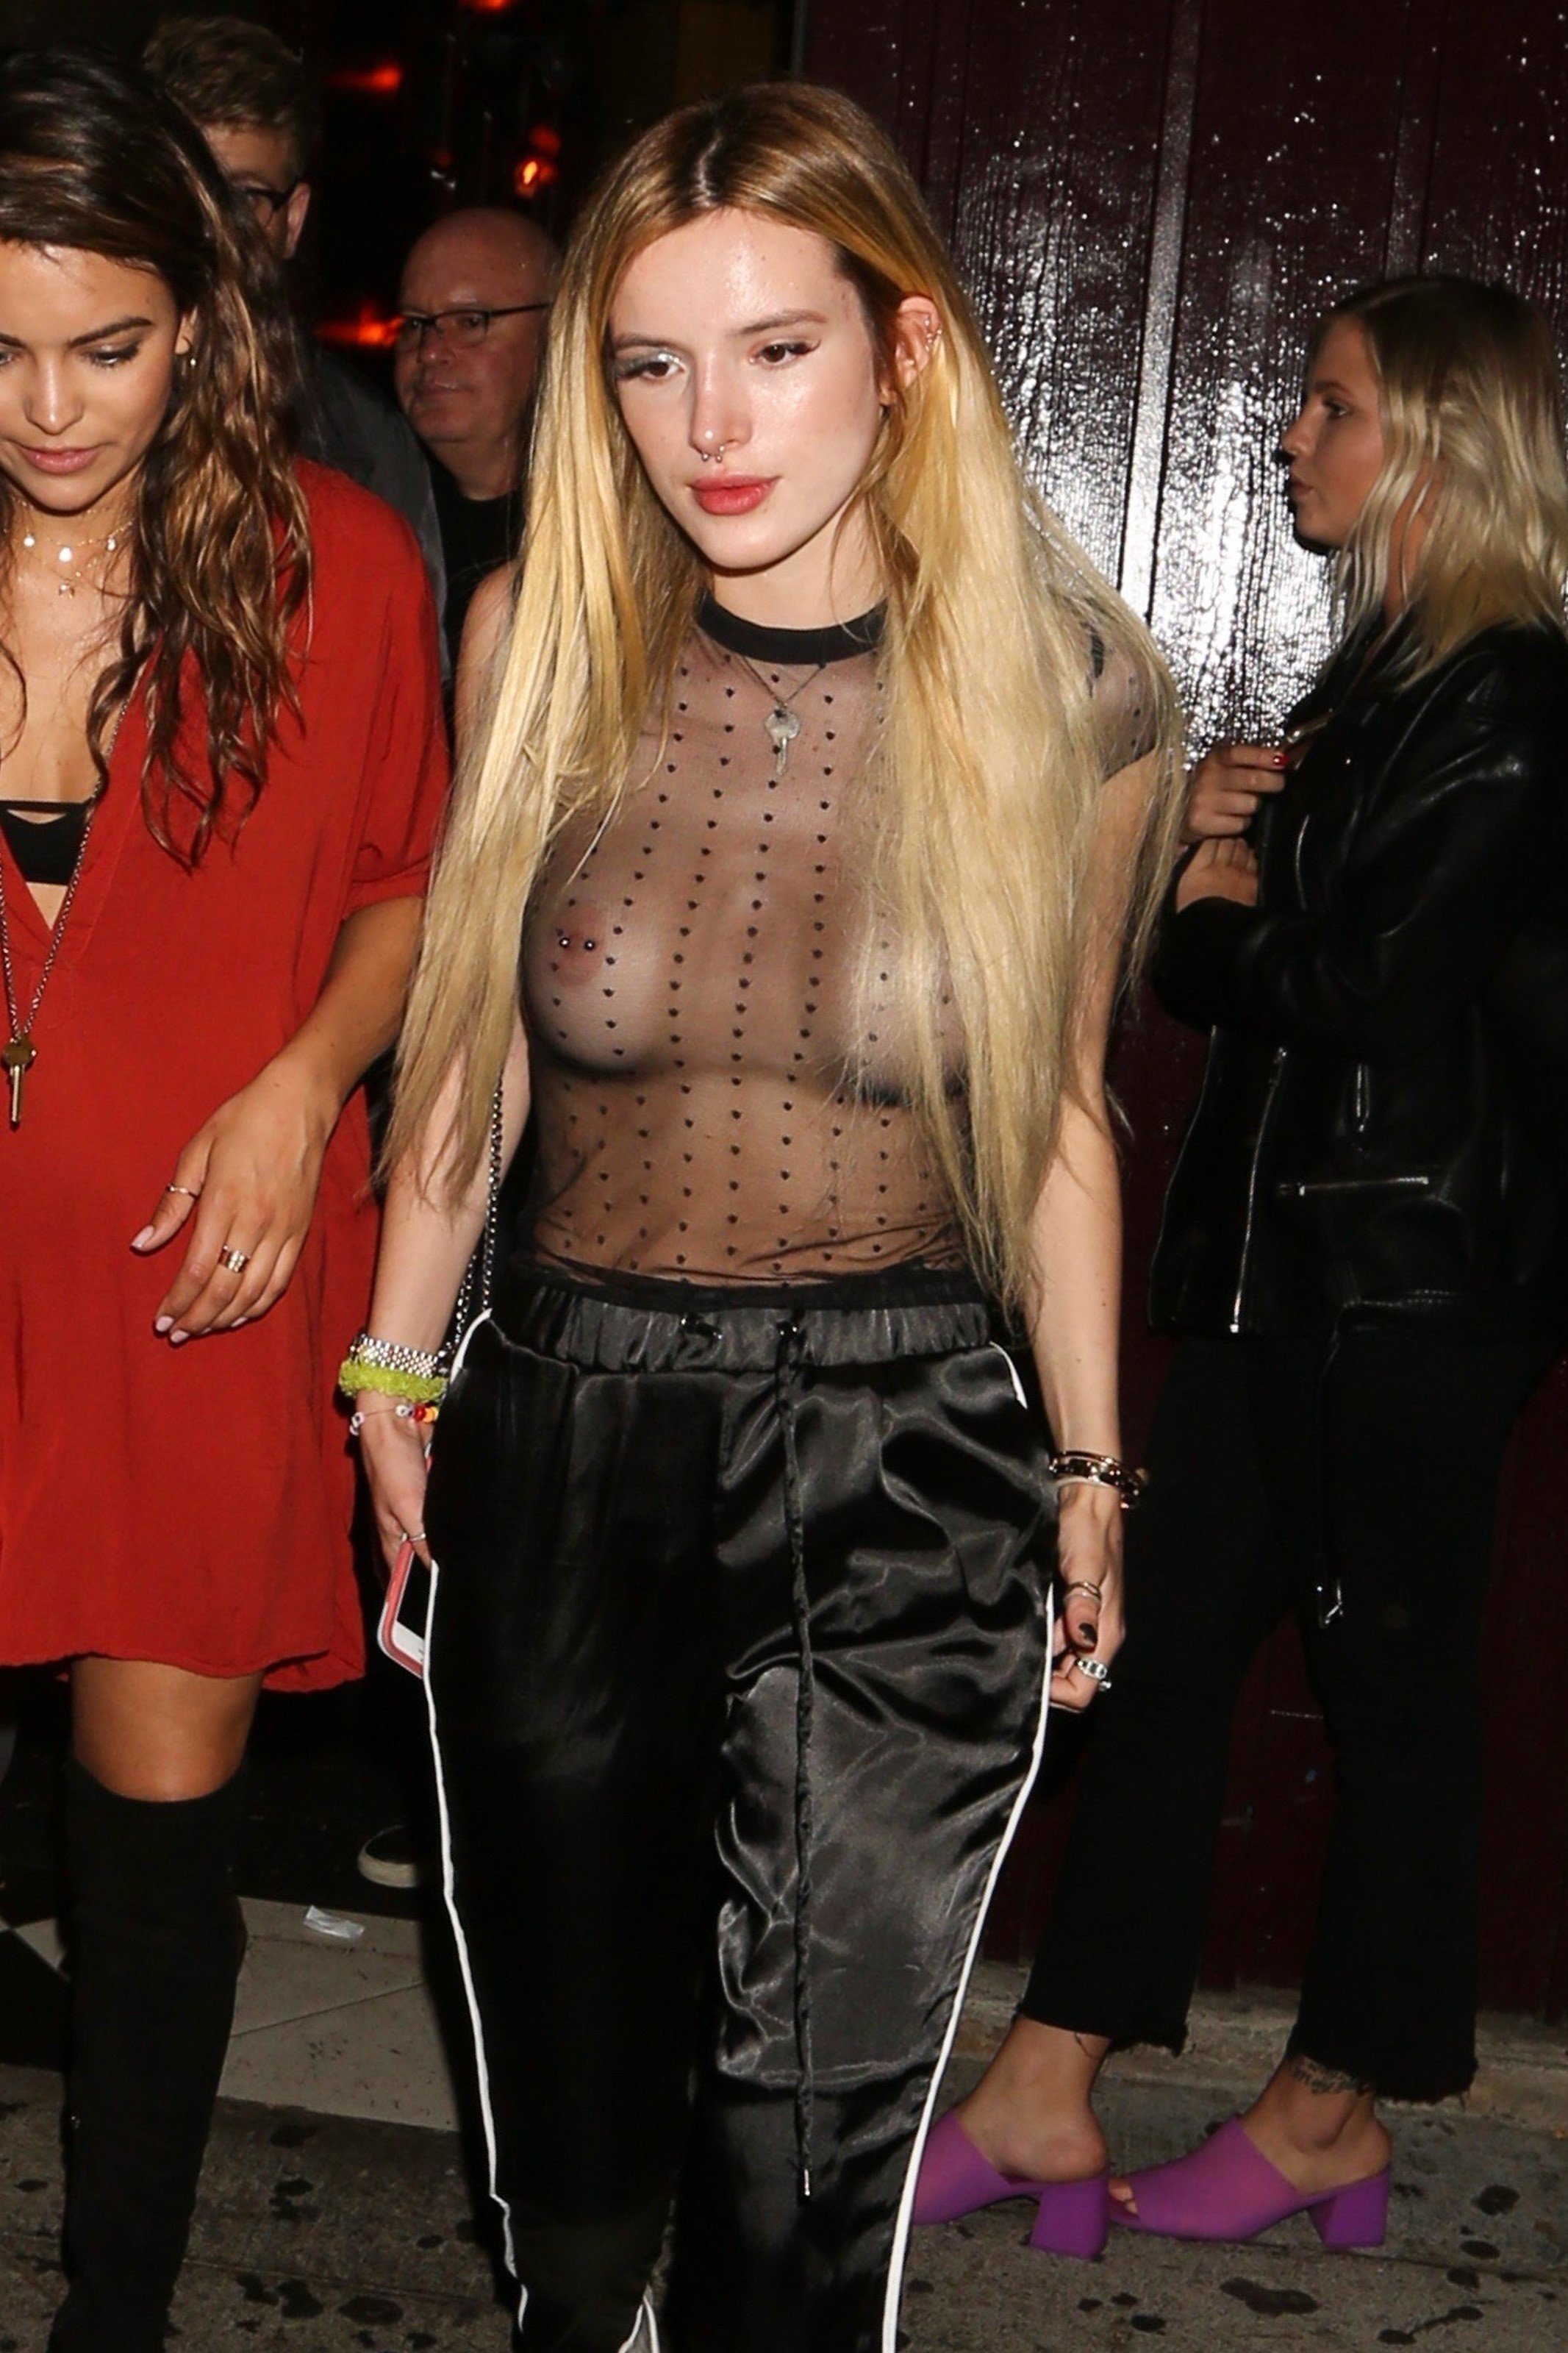 Bella Thorne With Her Pierced Nipples